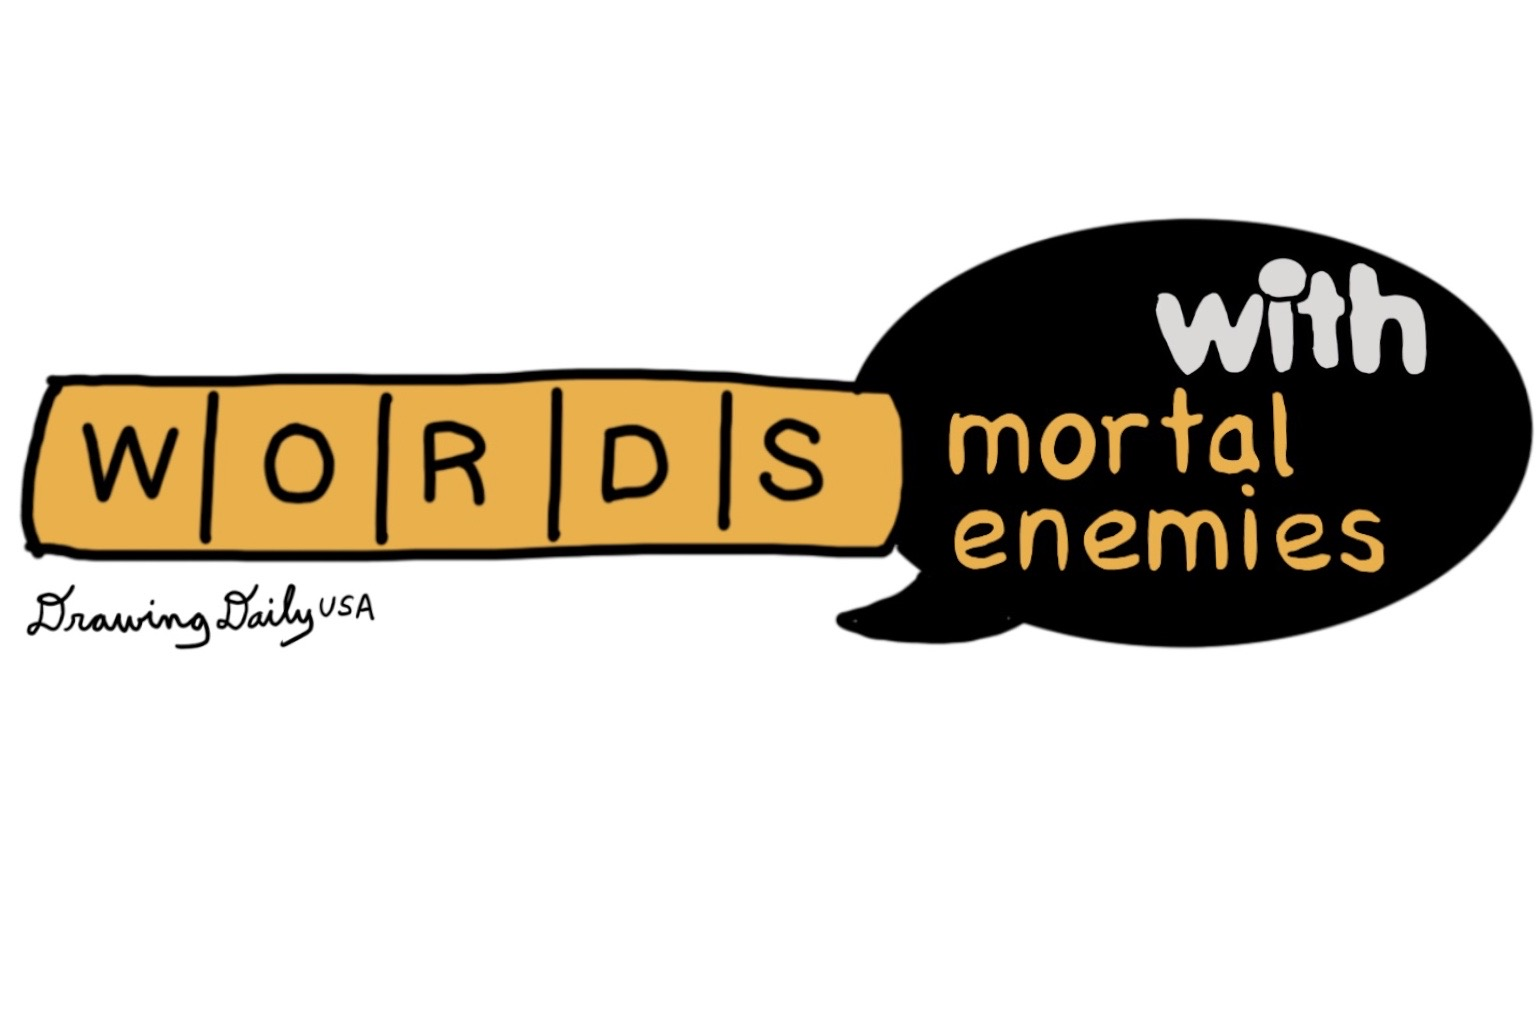 Words With Mortal Enemies